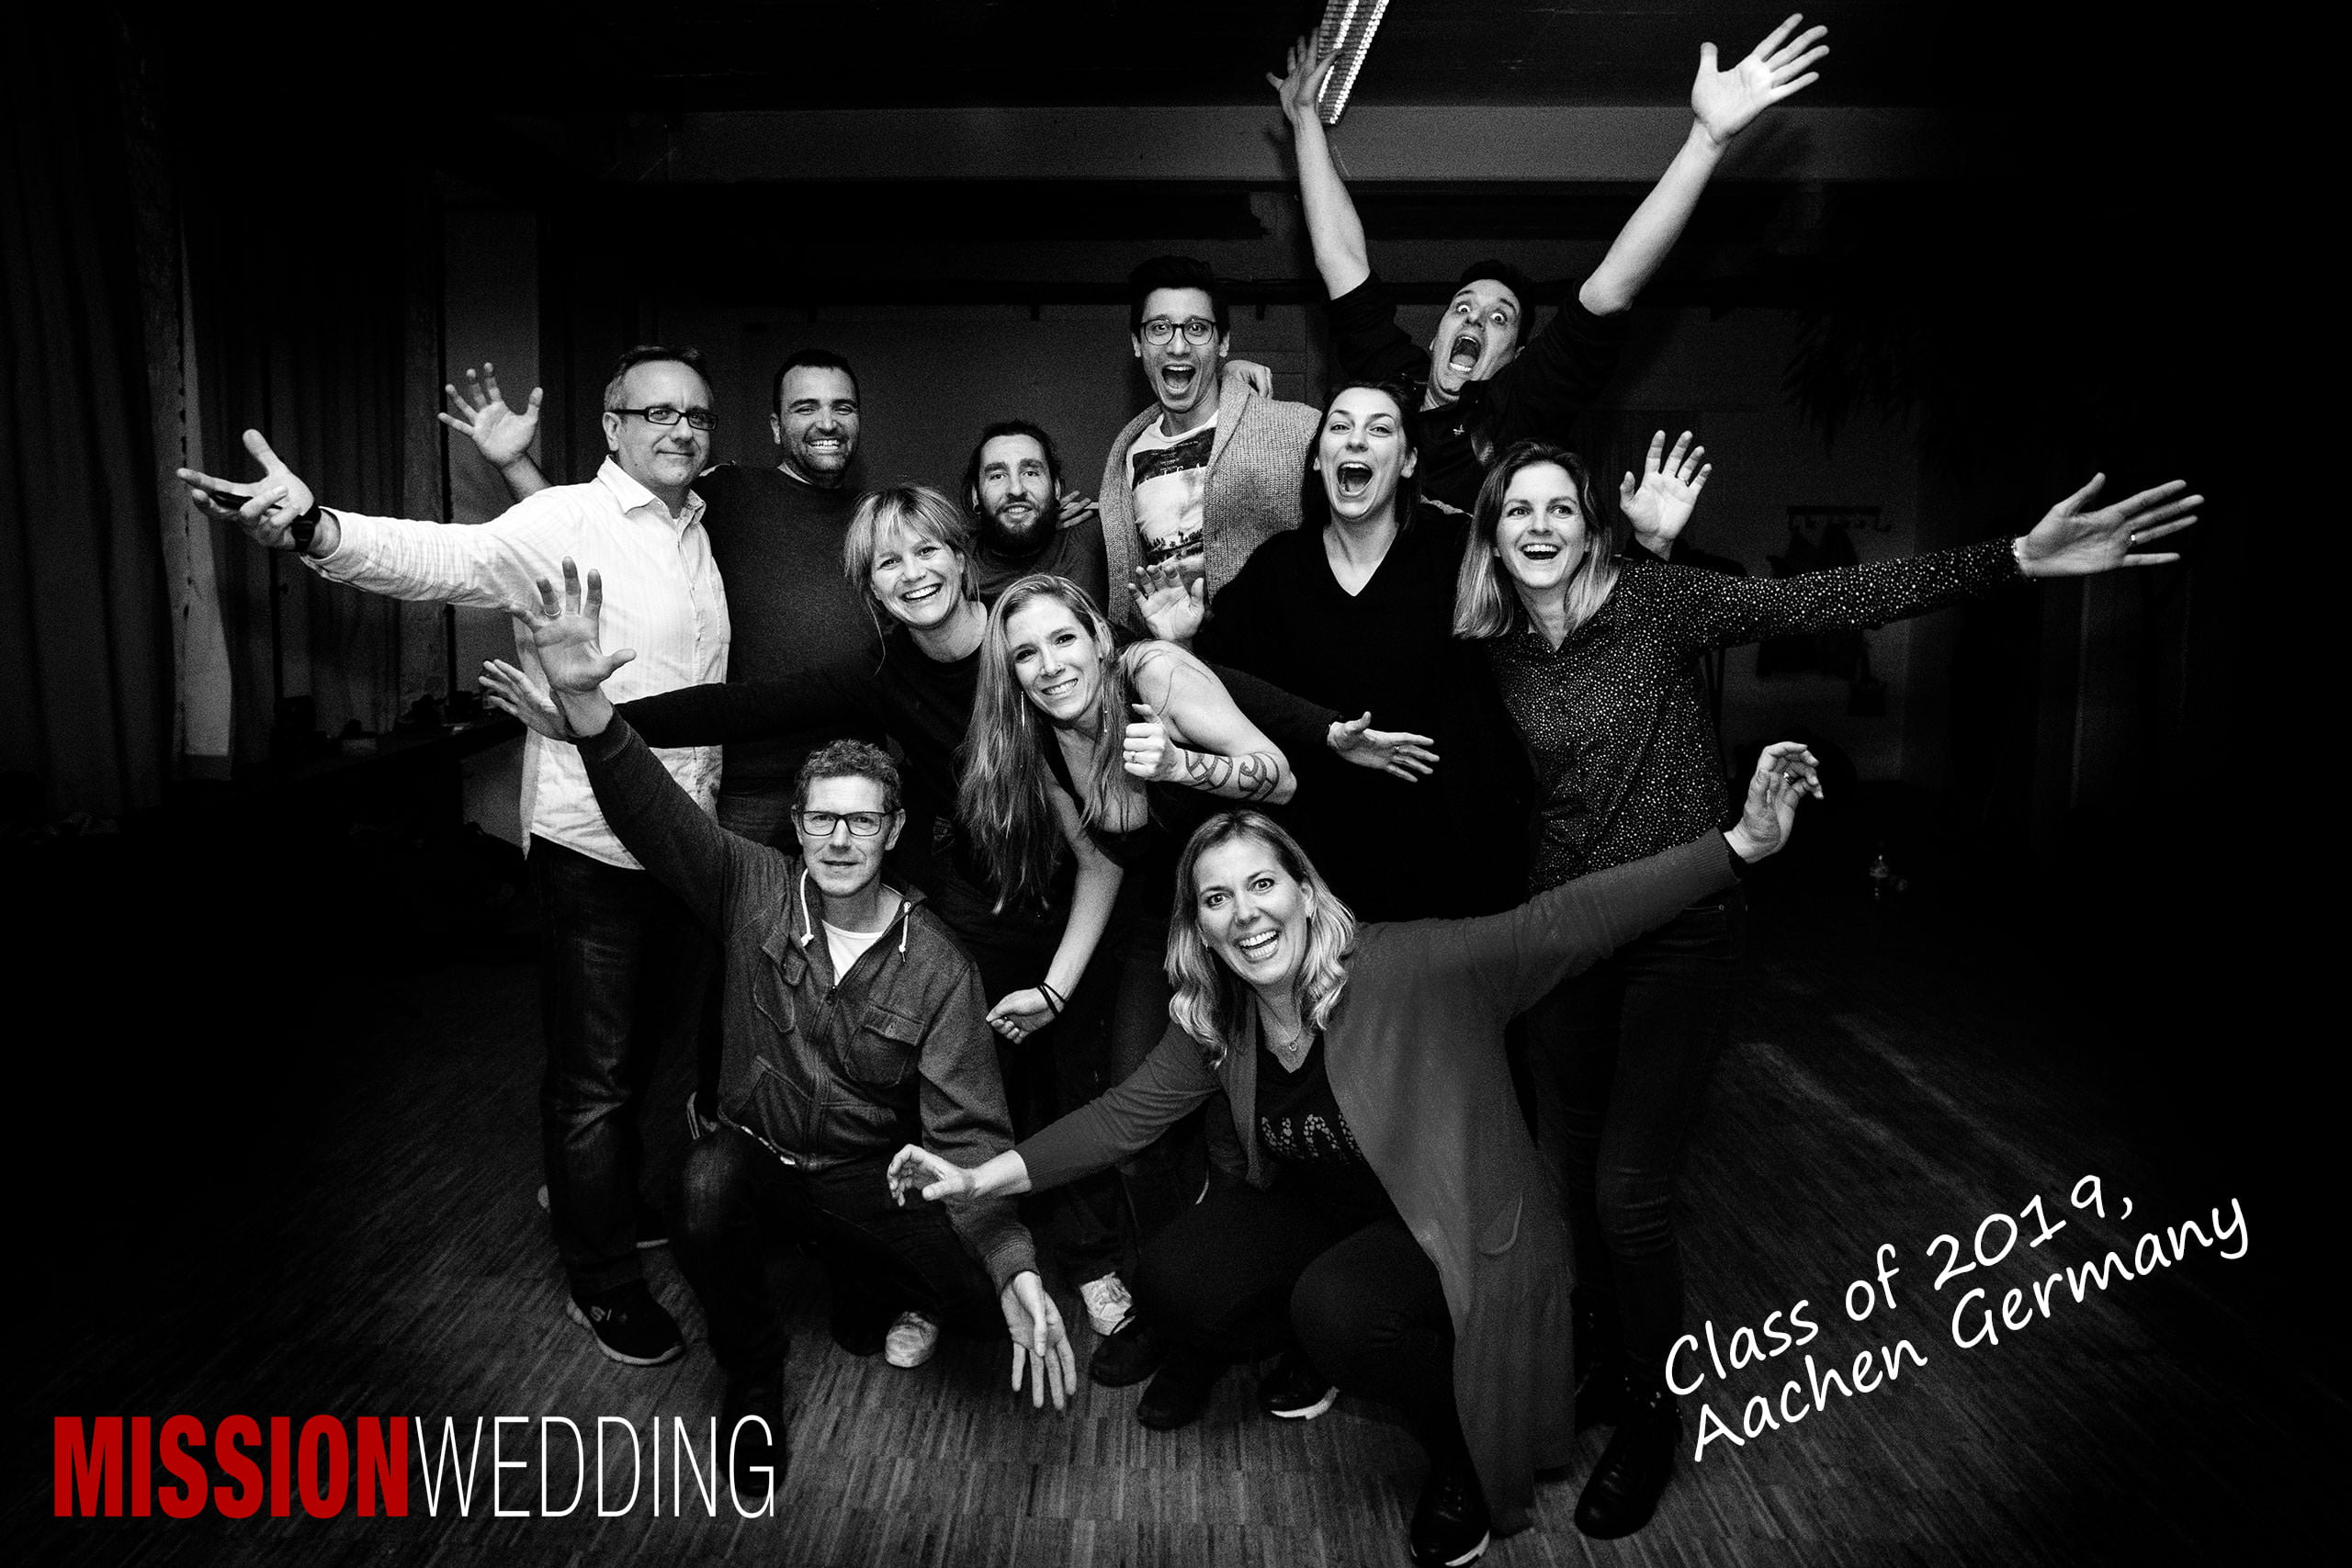 MISSION WEDDING Masterclass - Class of 2019, Aachen Germany [Photo: Rich Howman]